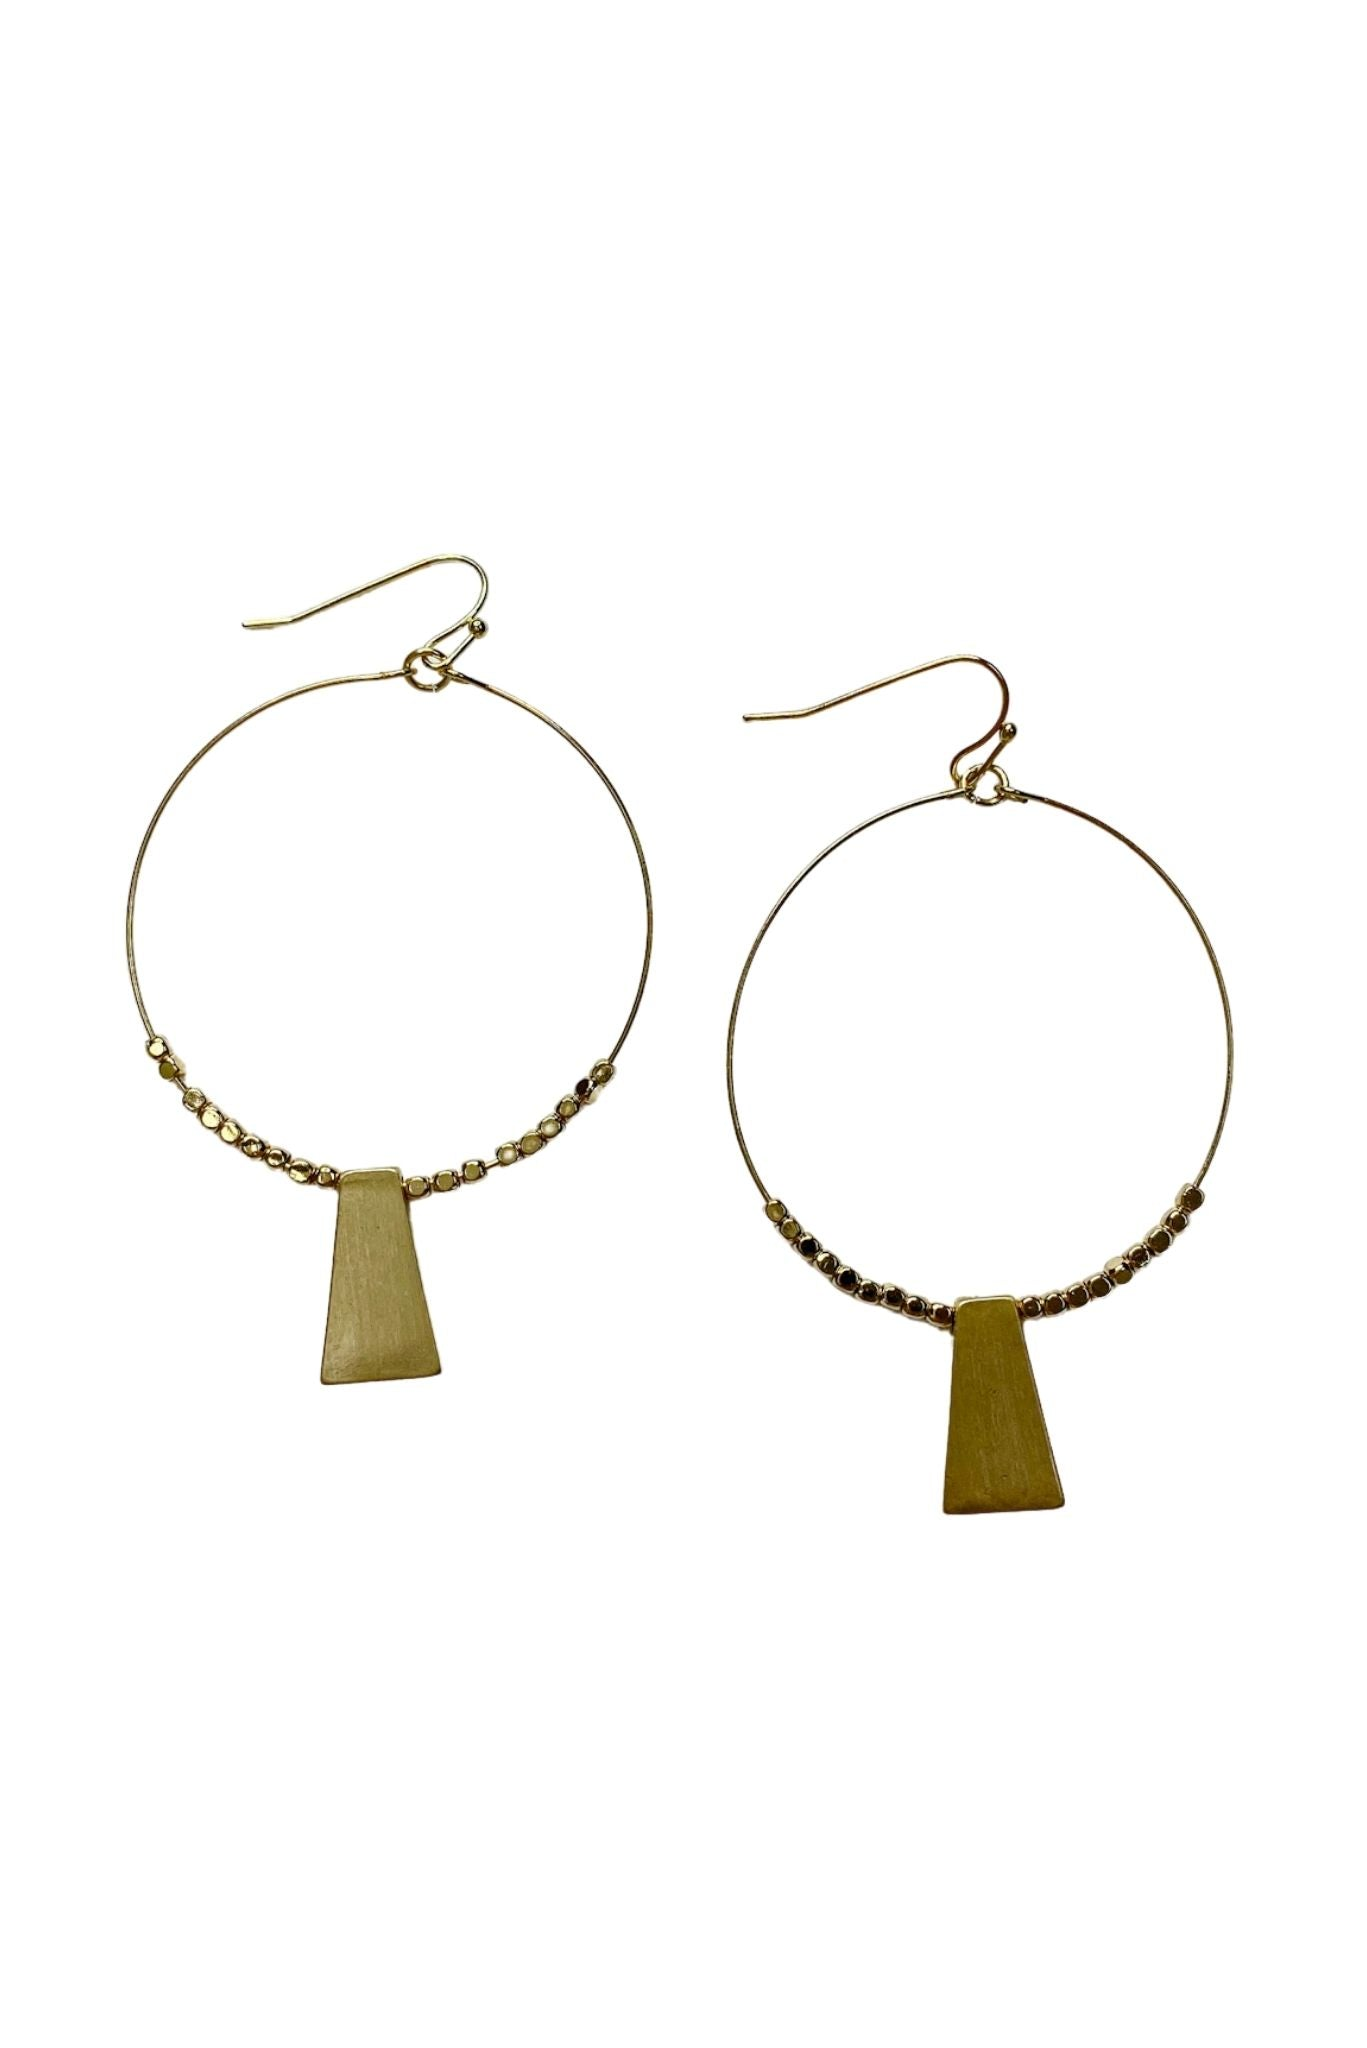 Gold Hoop Earrings w/ Trapezoid Charm and Beads